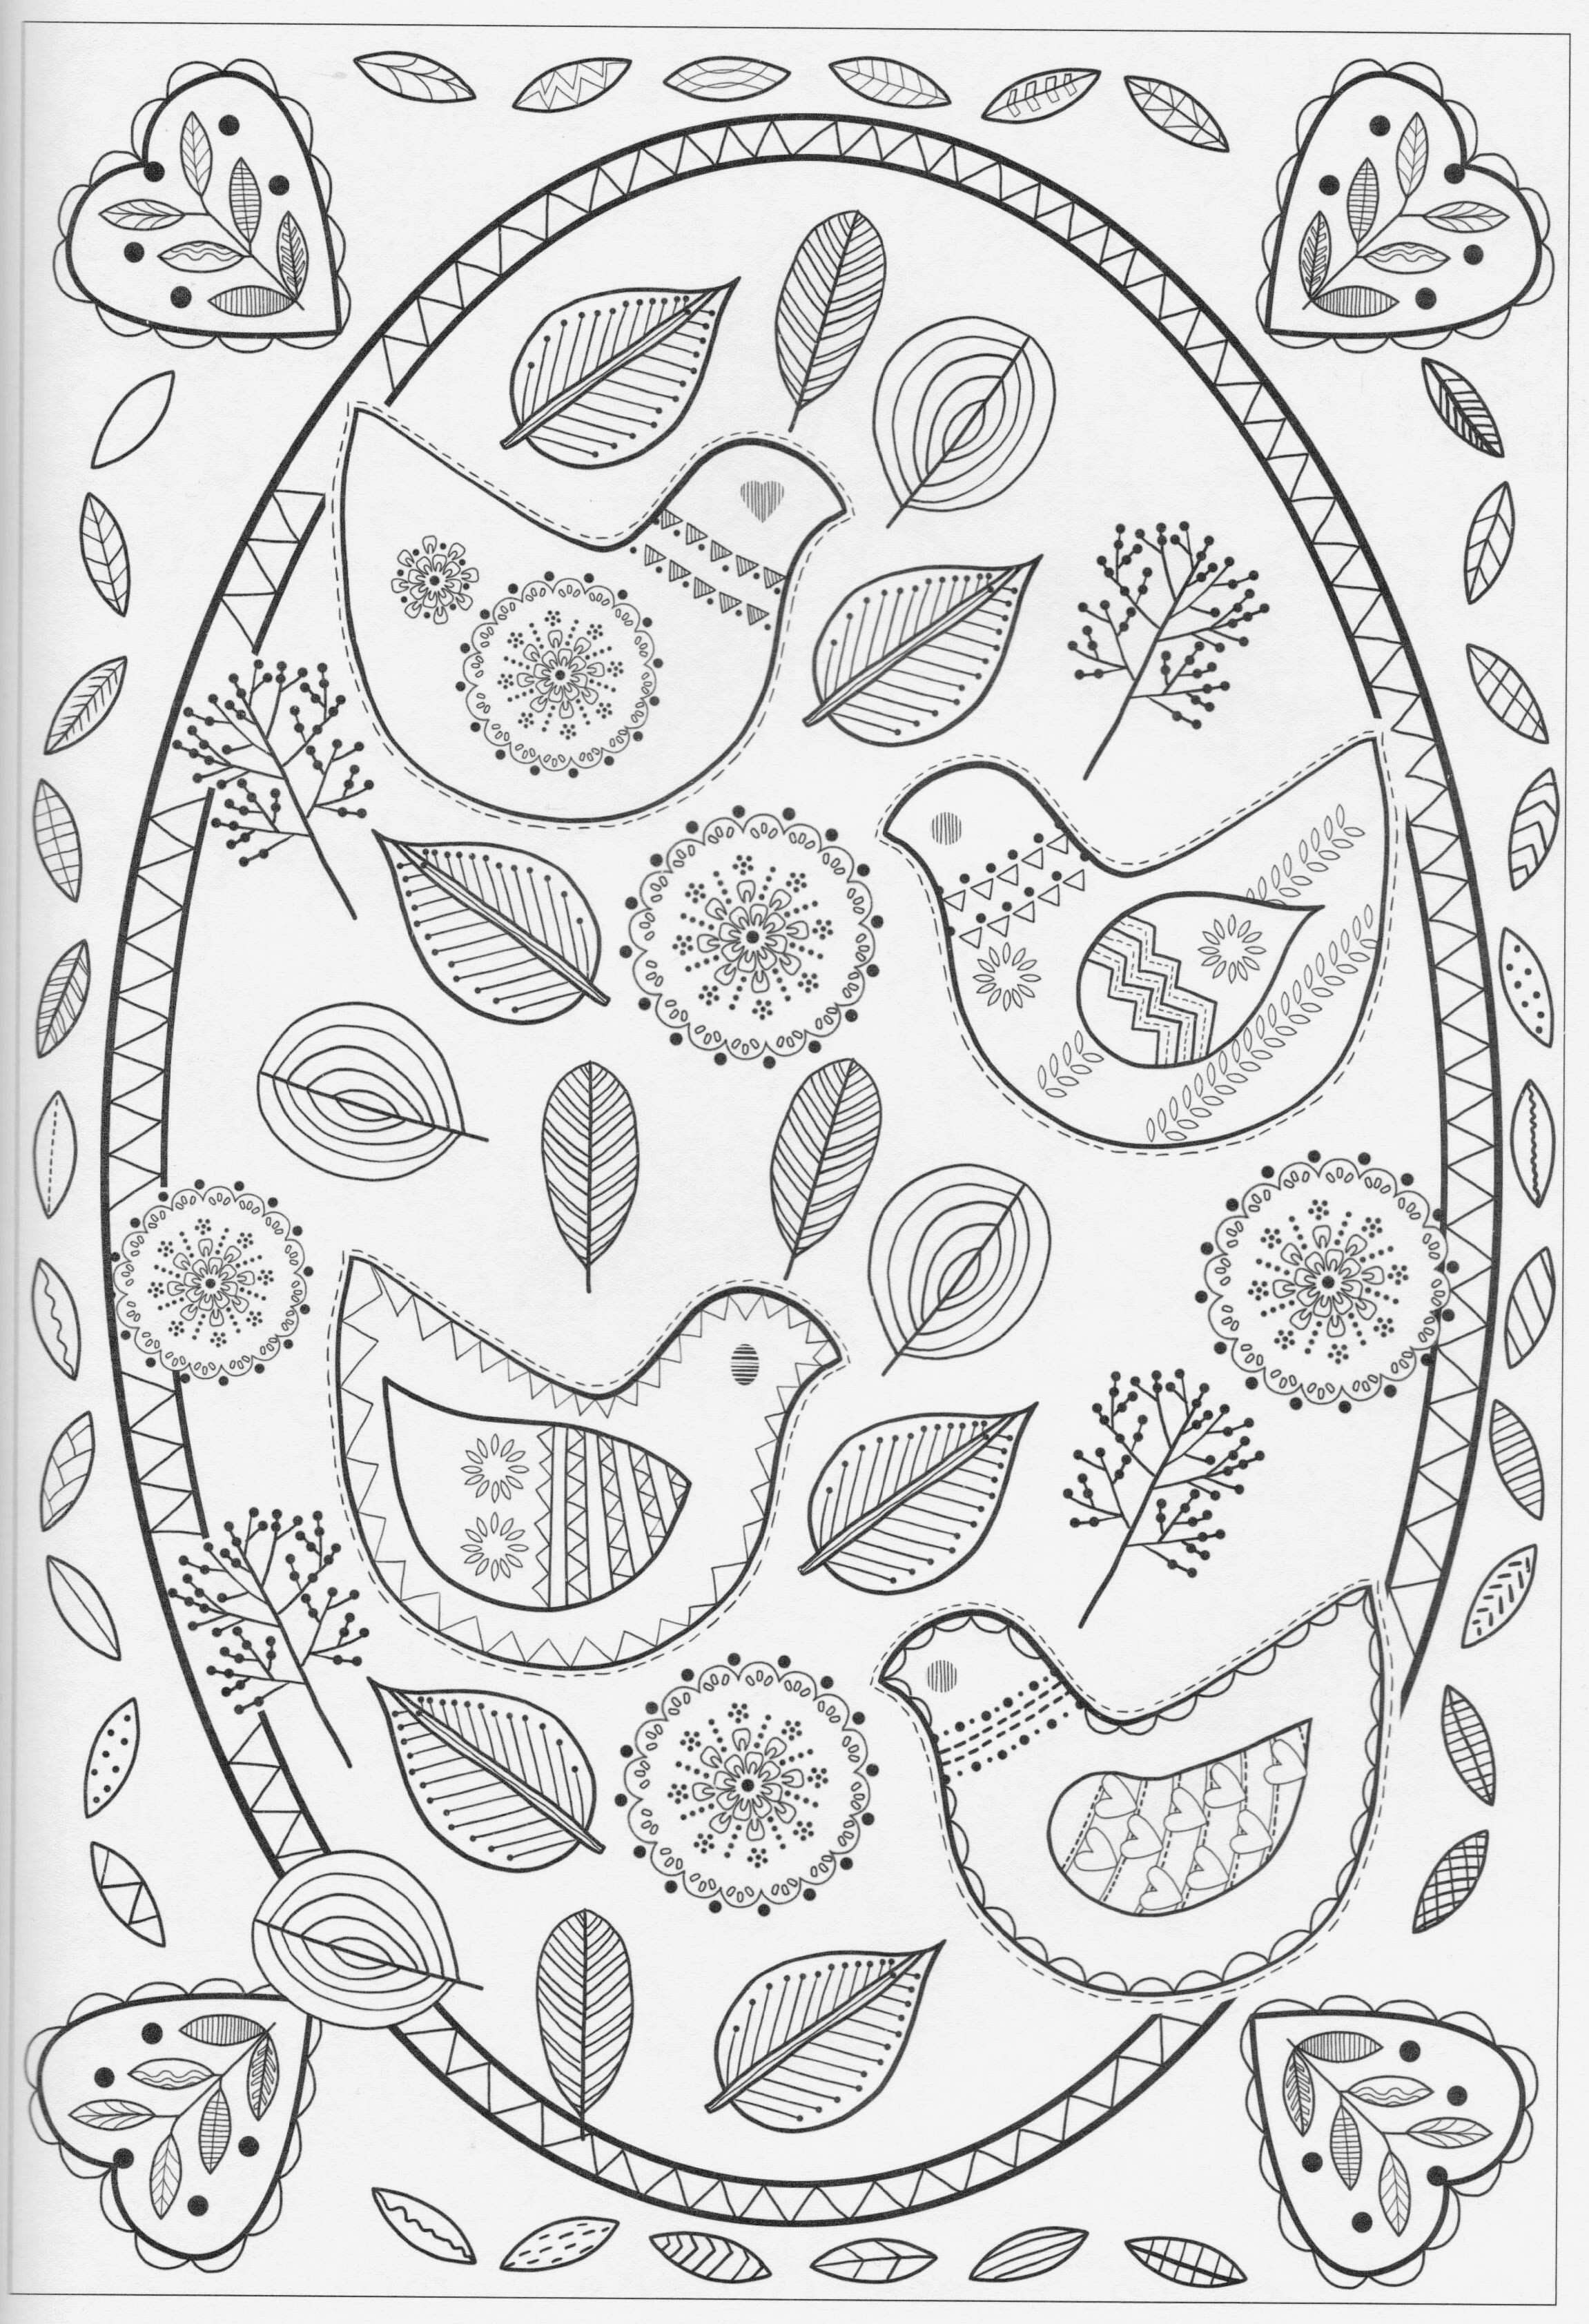 Crayola Pop Art Coloring Pages - Tripafethna